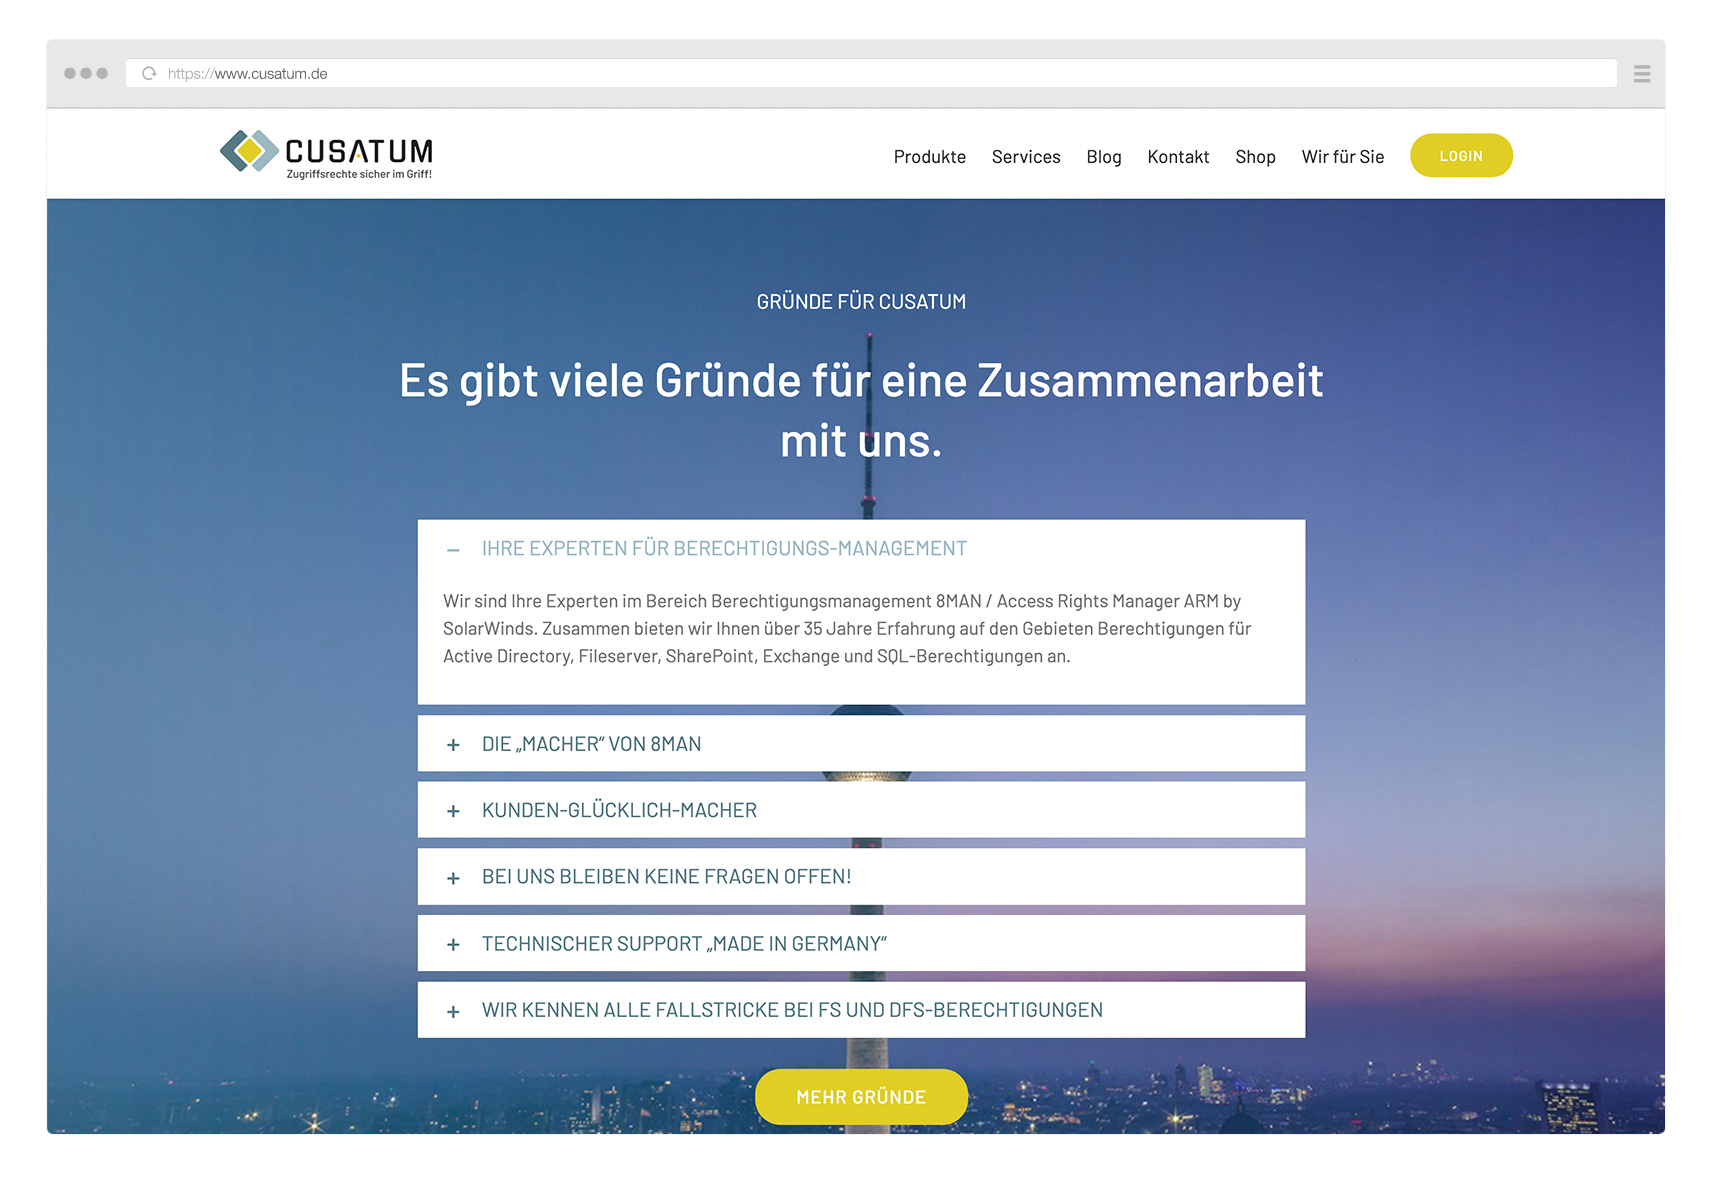 Cusatum_Website_Gruende